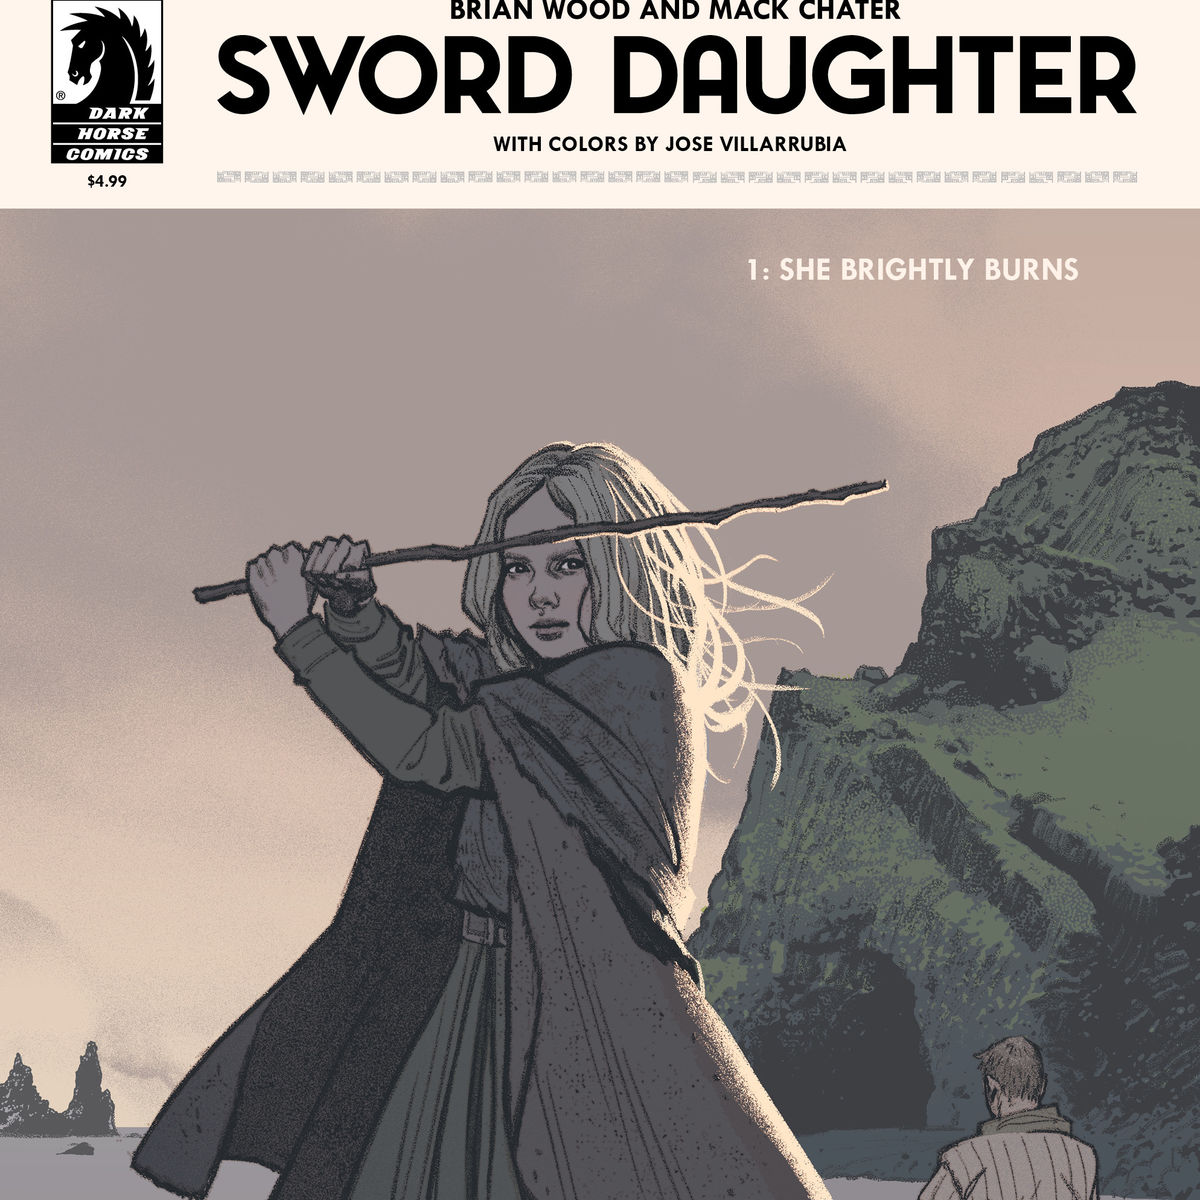 Issue #1 of Sword Daughter